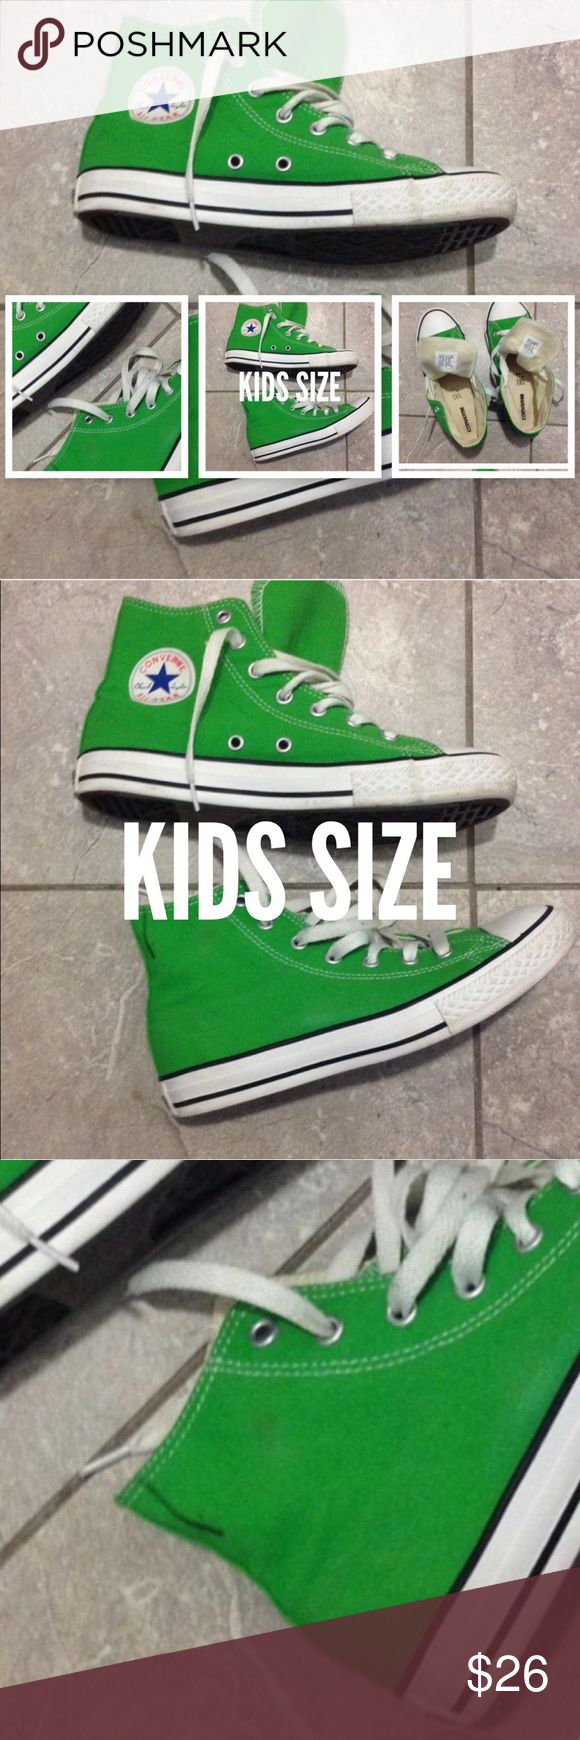 Boyz Converse Basketball Shoes Size 5 Brand new condition never worn Converse Shoes Sneakers